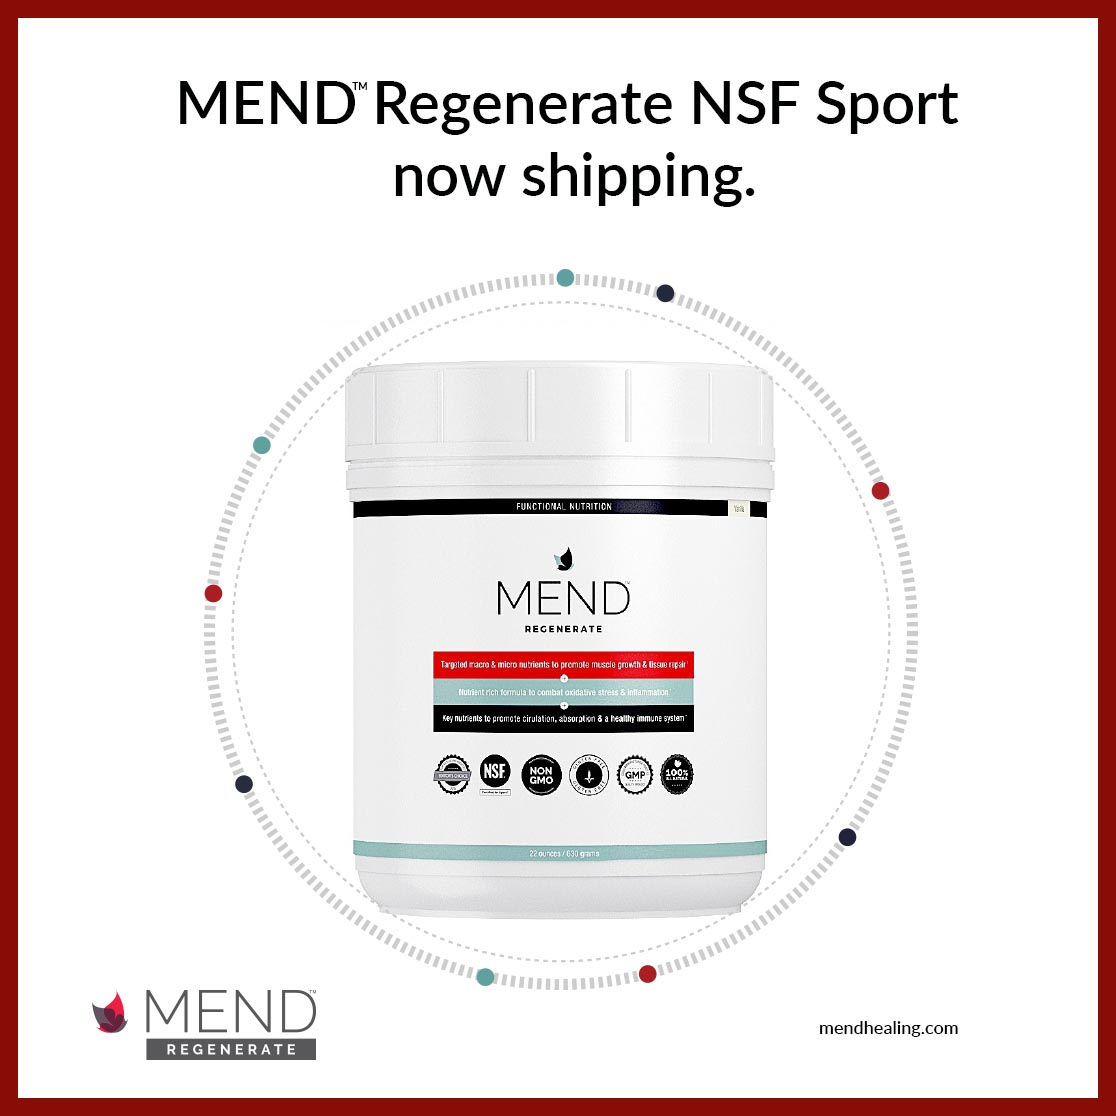 MEND™ REGENERATE NSF SPORT NOW SHIPPING TO NFL, NBA and MLB CLIENTS